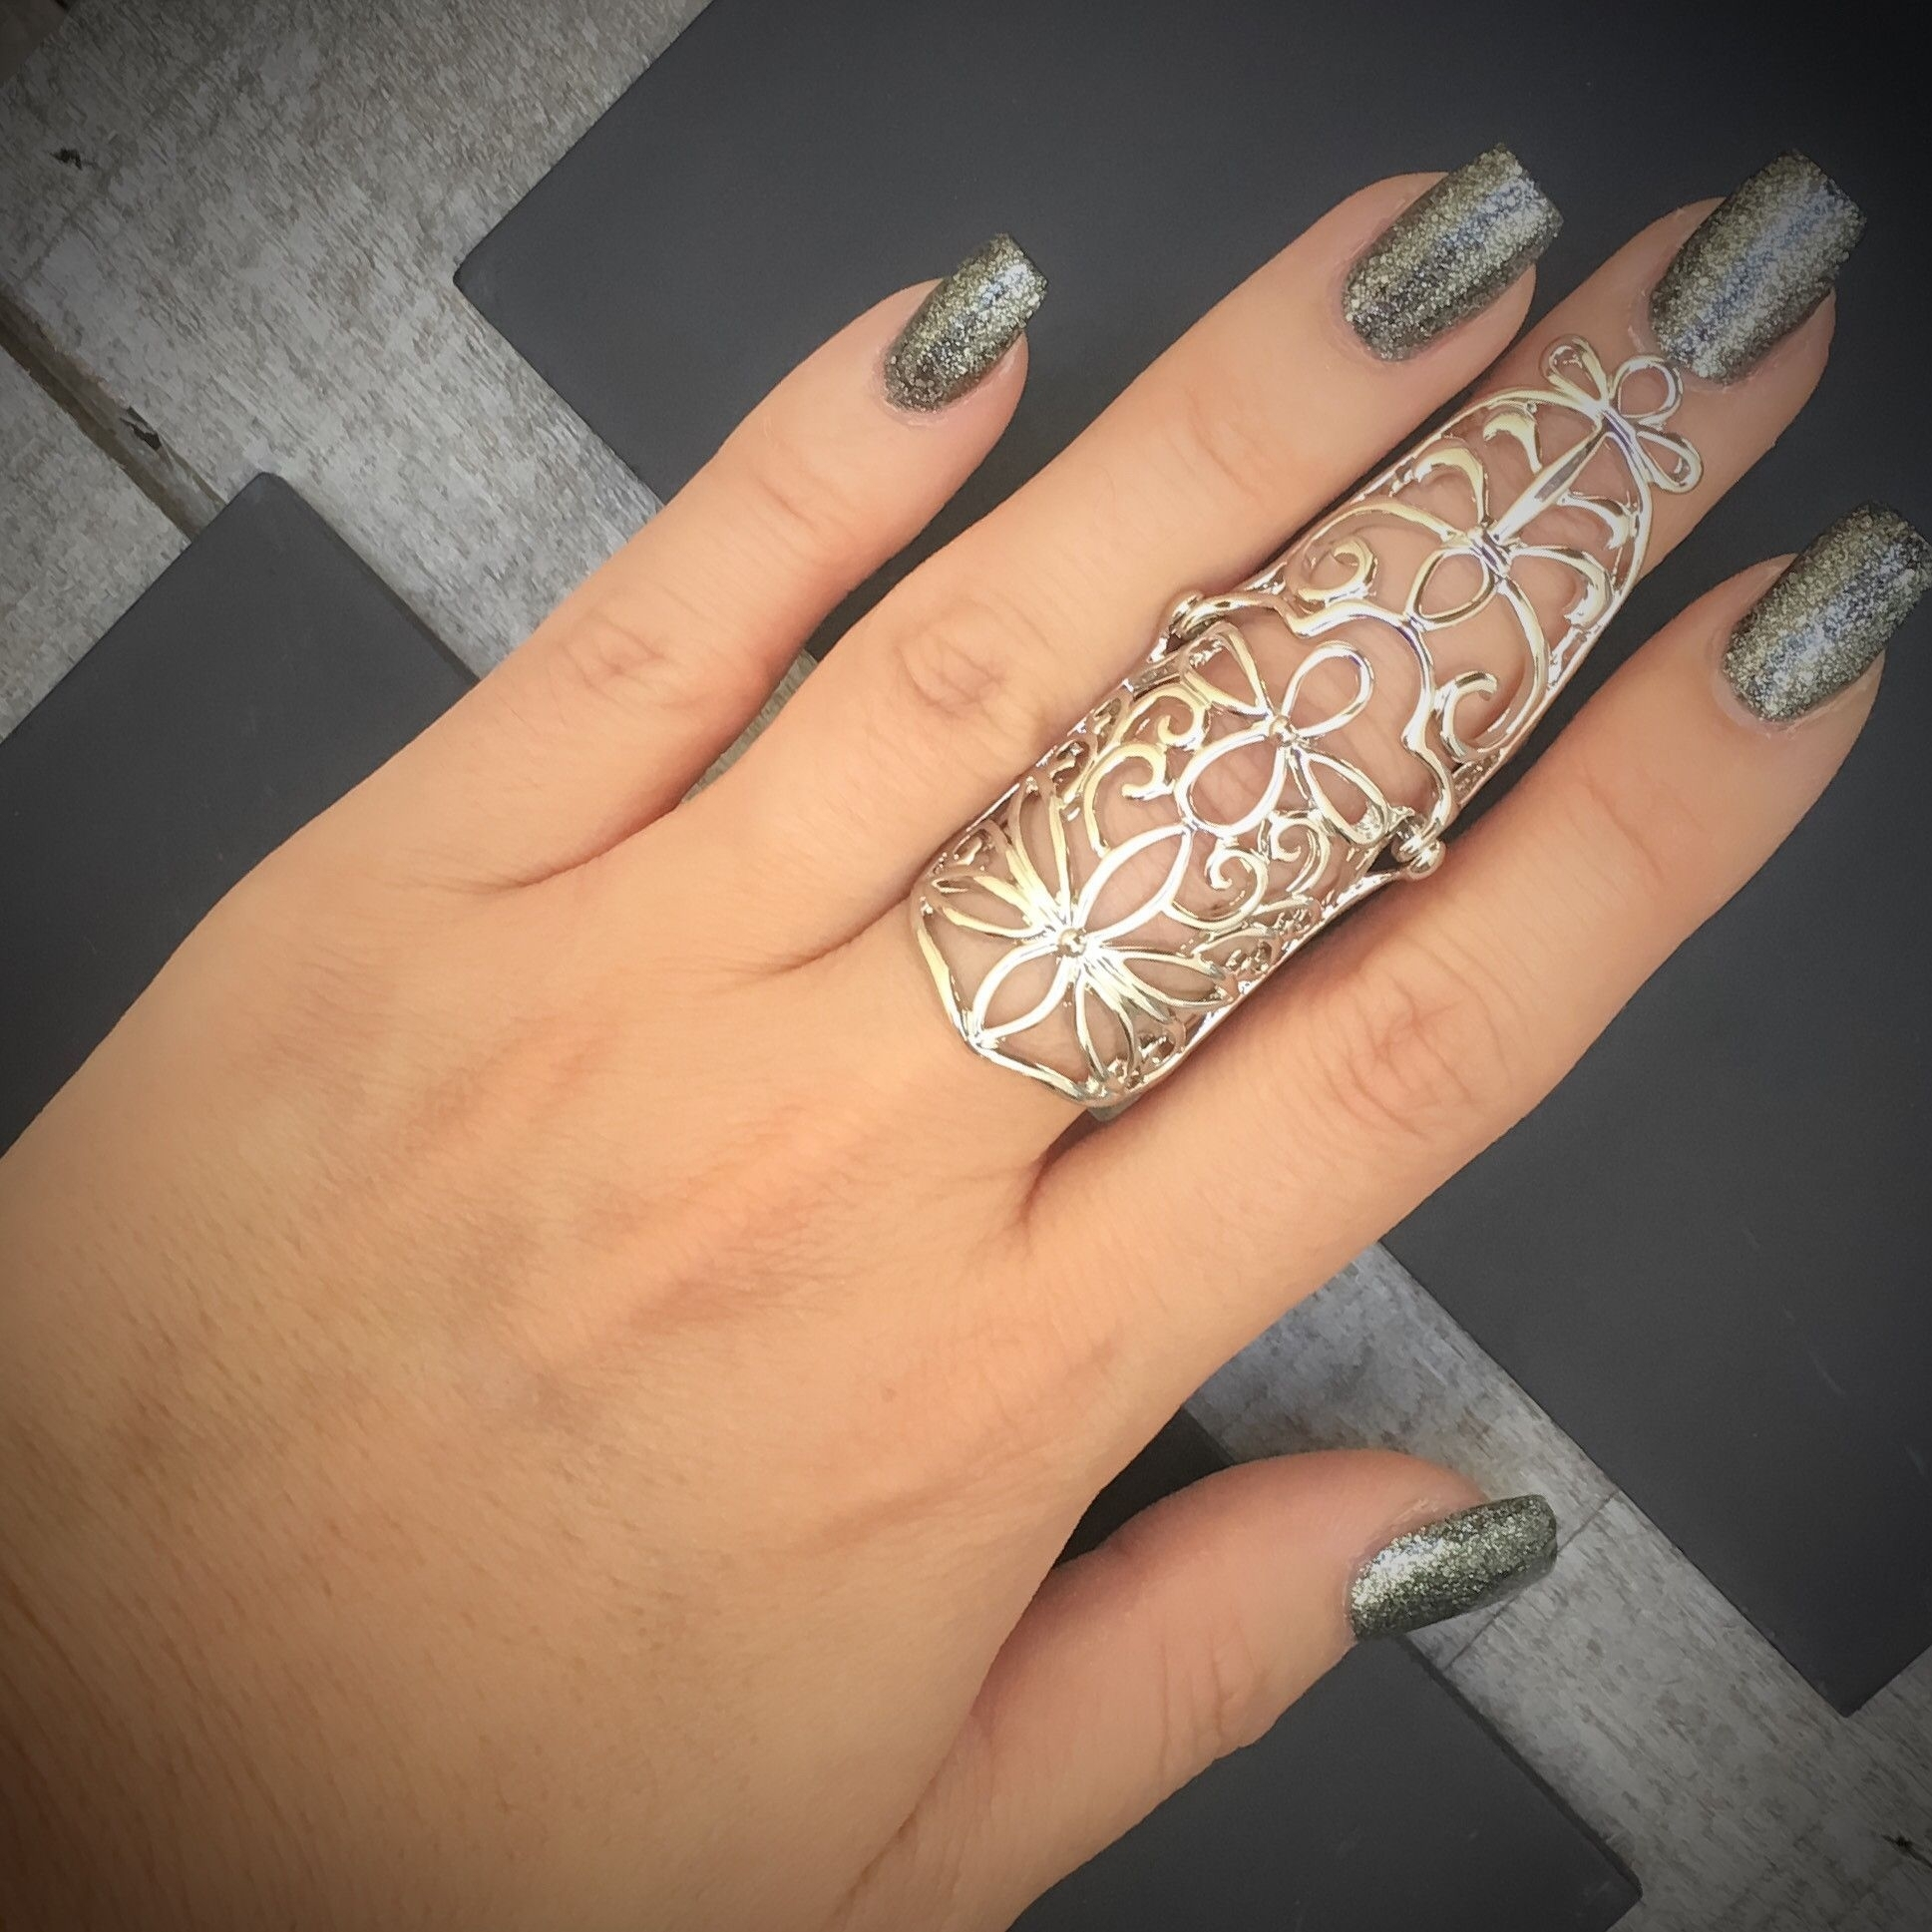 Elven Design Knuckle Ring | Knuckle Rings, Ethereal And Floral With Best And Newest Diy Chevron Knuckle Rings (View 8 of 15)